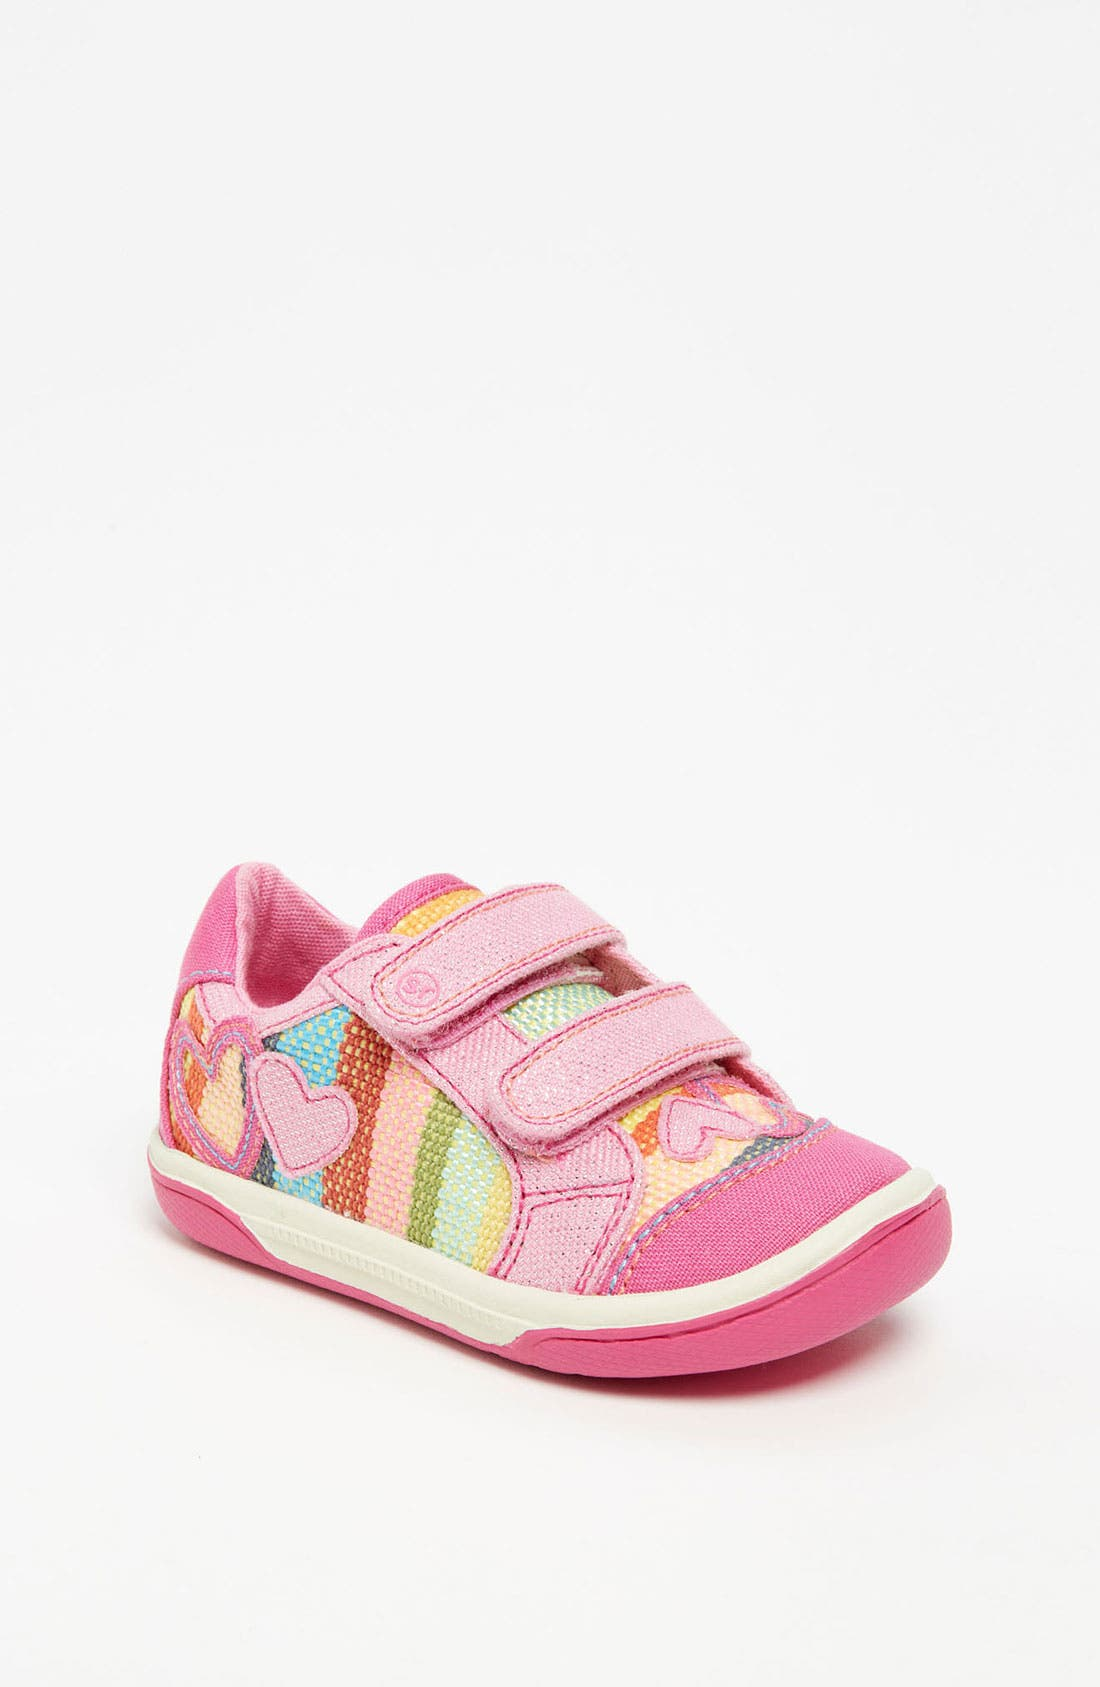 Alternate Image 1 Selected - Stride Rite 'Ryder' Sneaker (Baby, Walker & Toddler)